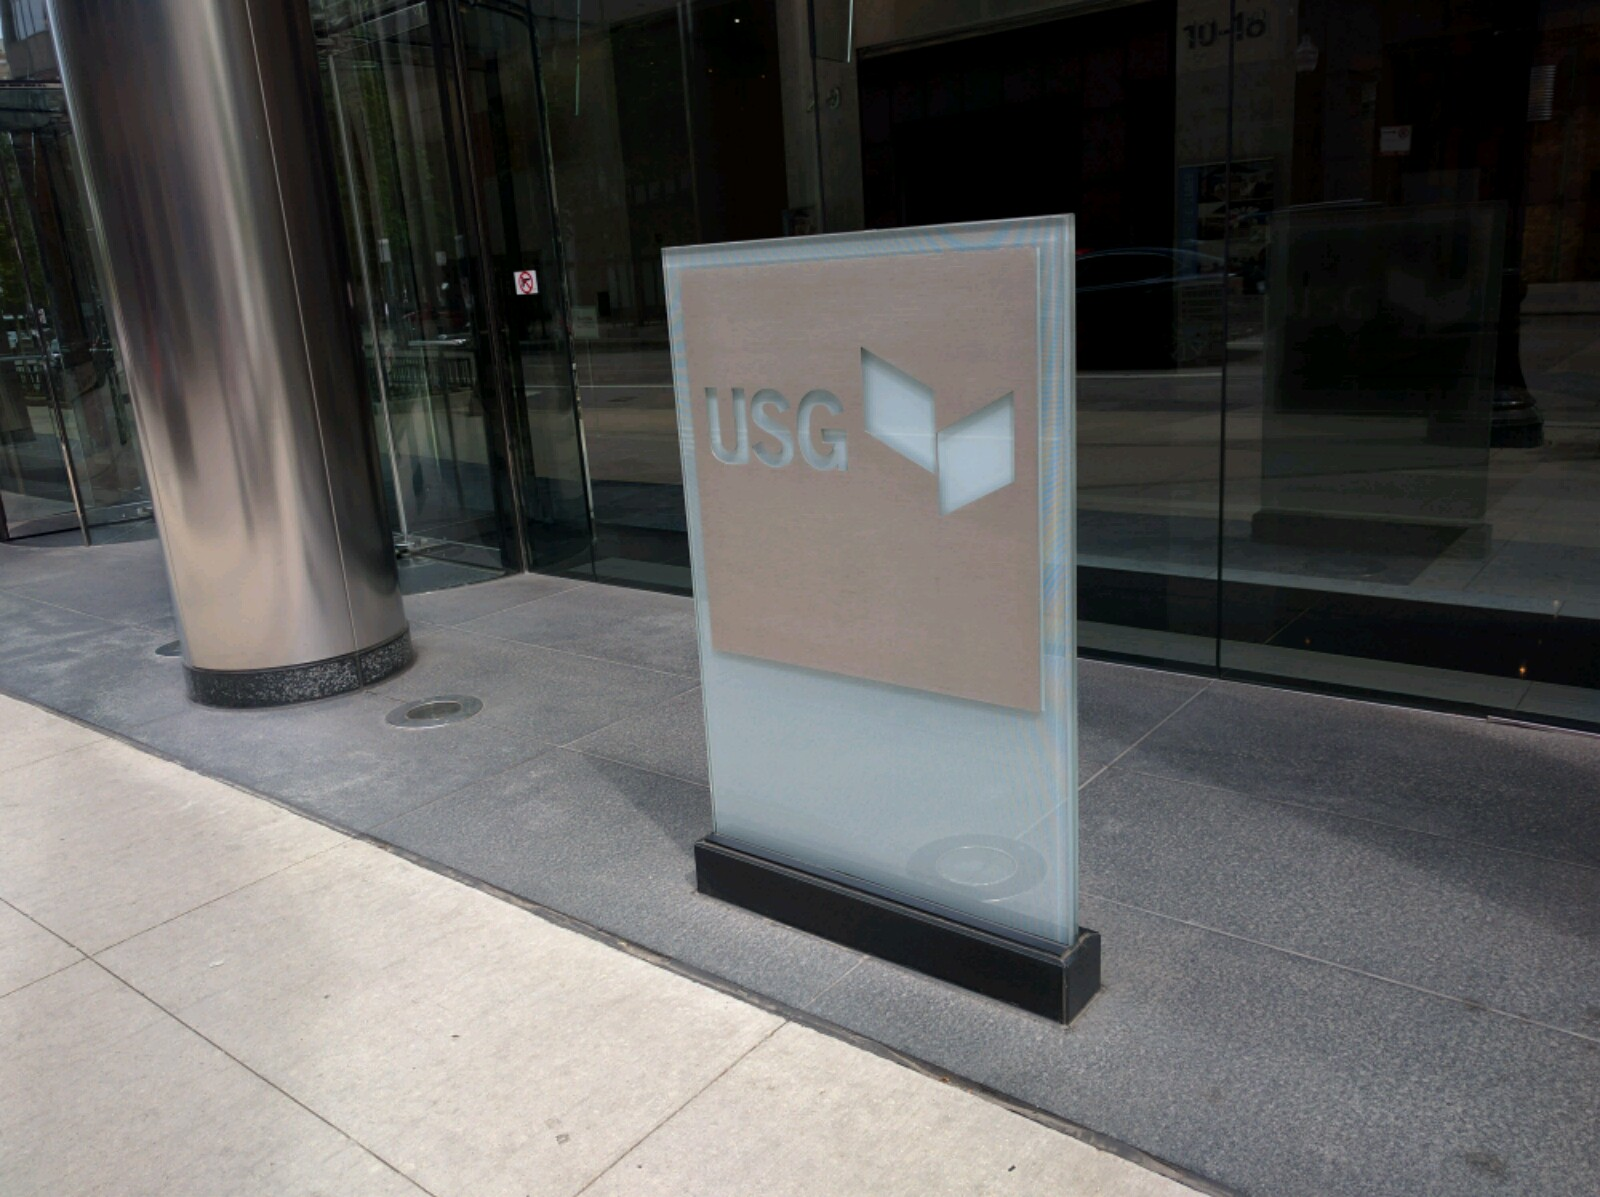 Entrance to USG's corporate headquarters in downtown Chicago, Illinois.